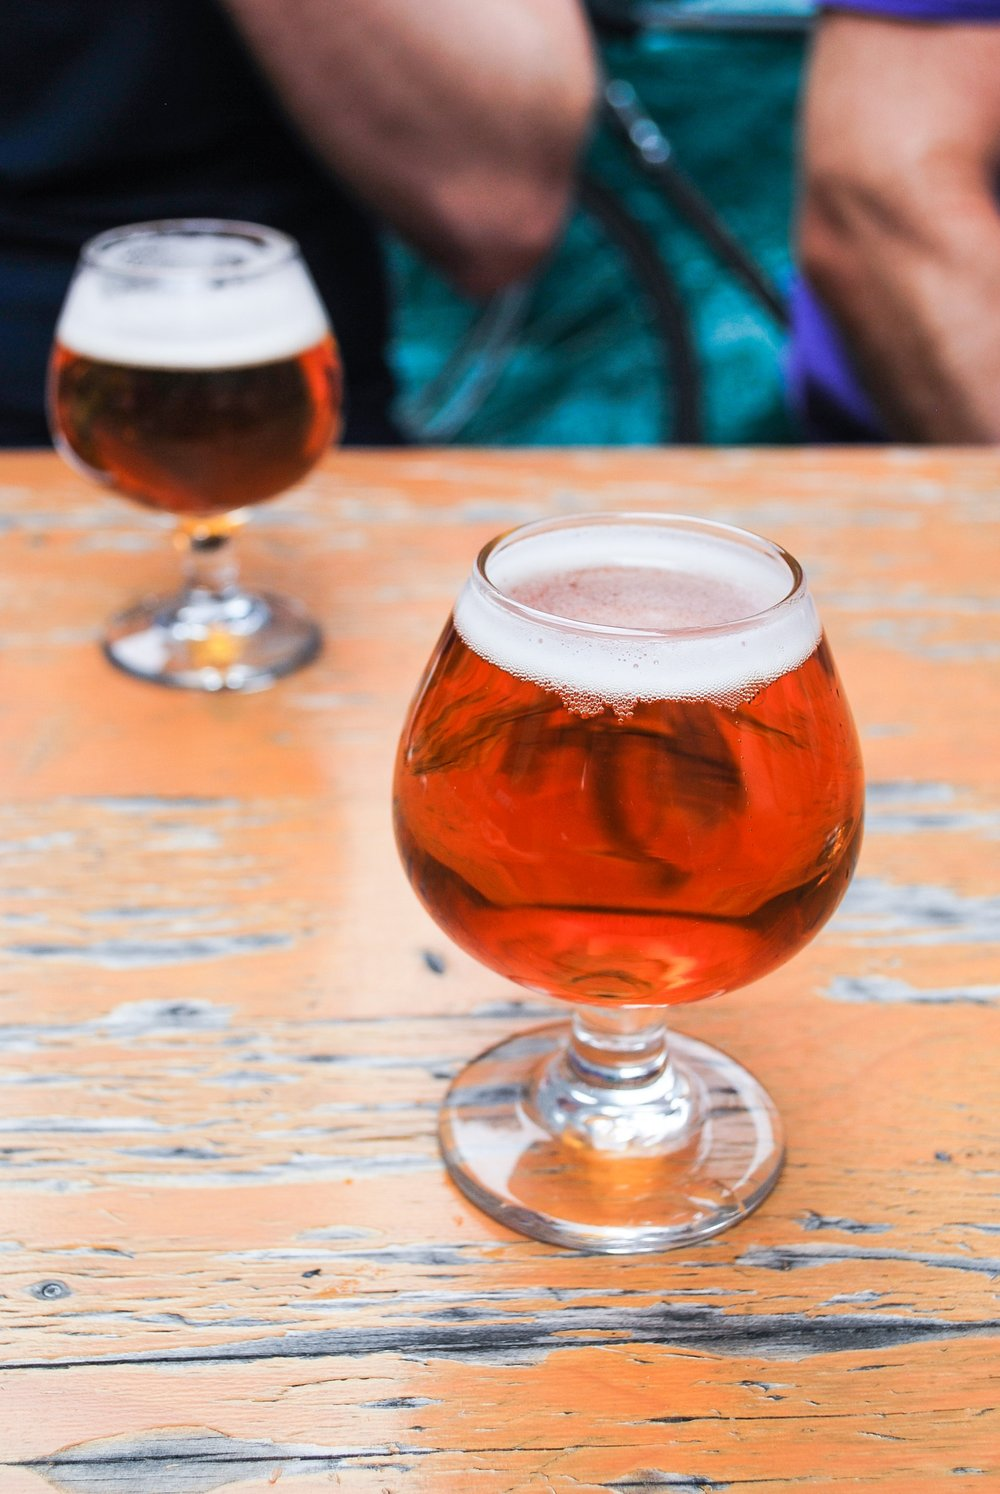 Are you a craft beer lover or looking to learn more about craft beer? Take a beer tour with Urban Adventures in NYC and explore the craft scene in Williamsburg!